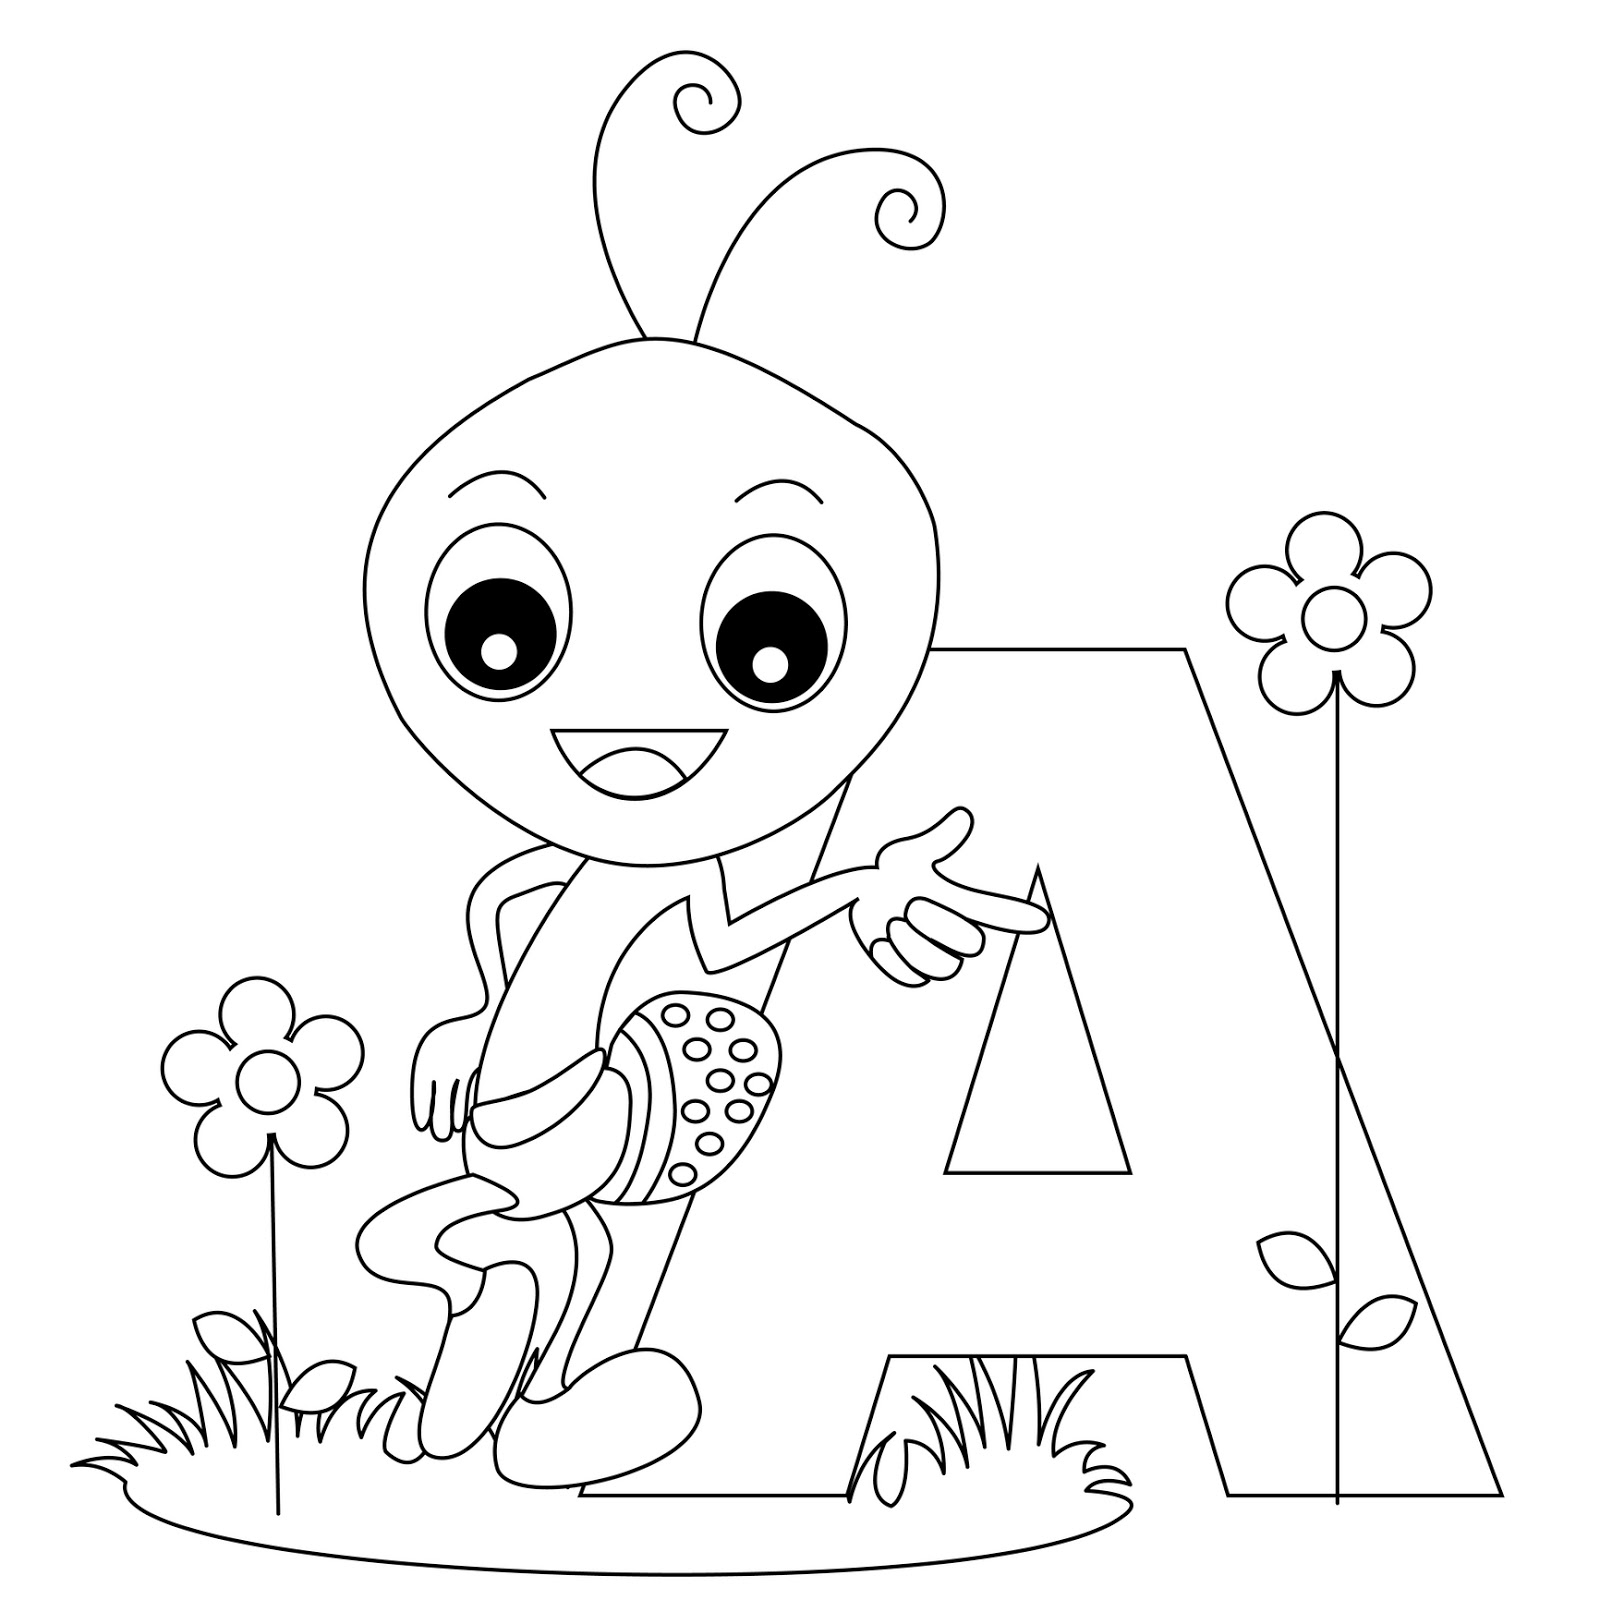 coloring alphabet animals coloring pages animals alphabet picture 31 coloring animals alphabet